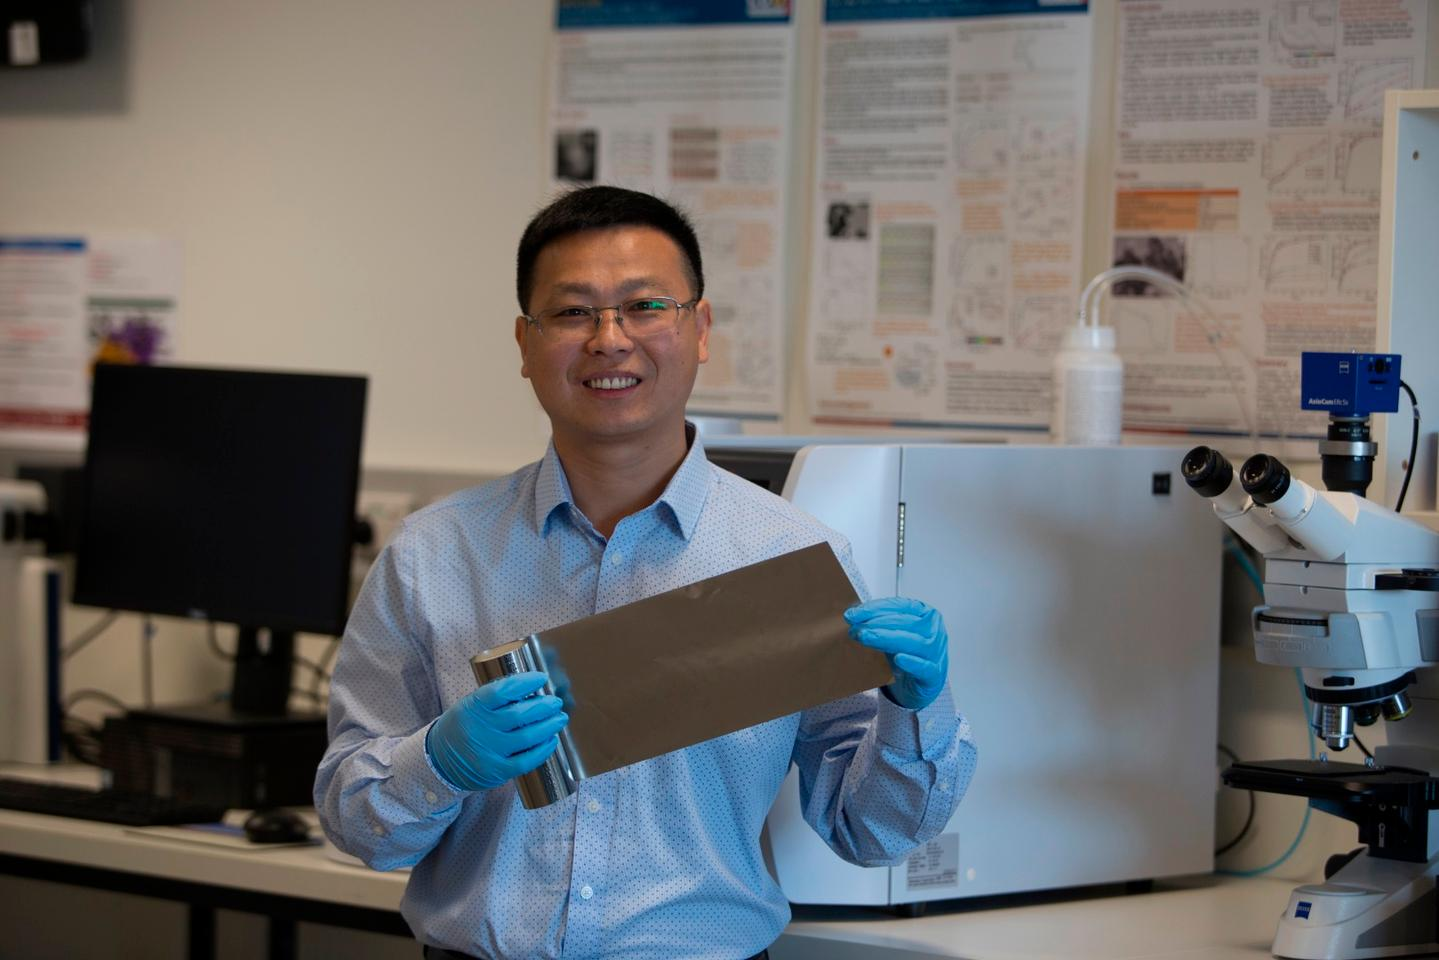 Laichang Zhang from Australia's Edith Cowan University has led the development of a new material that strips impurities from wastewater